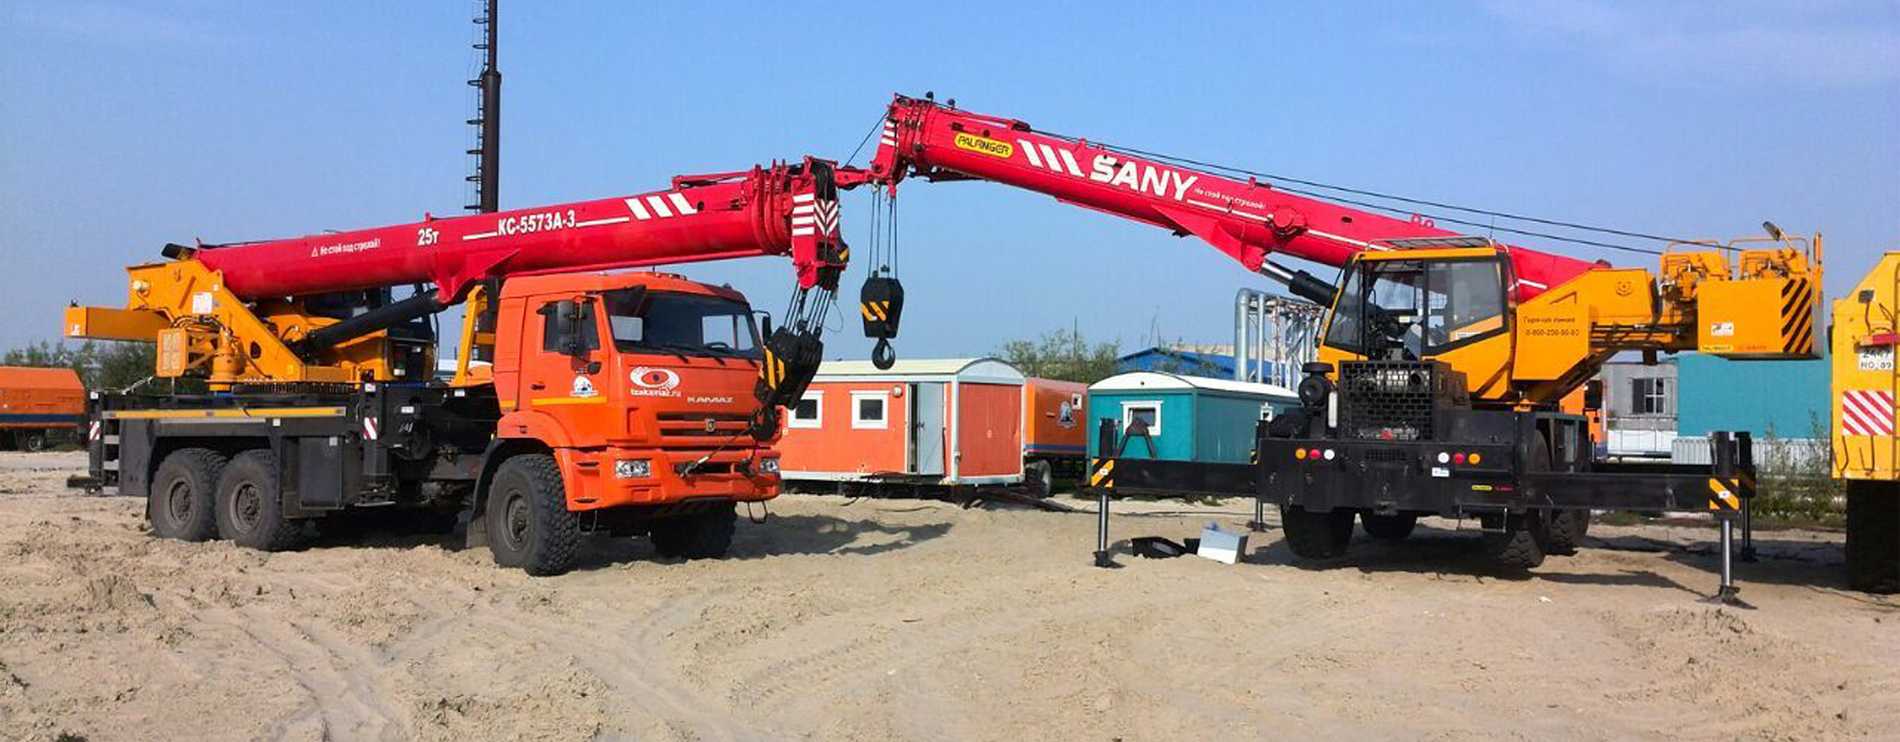 Truck-mounted Telescopic Crane